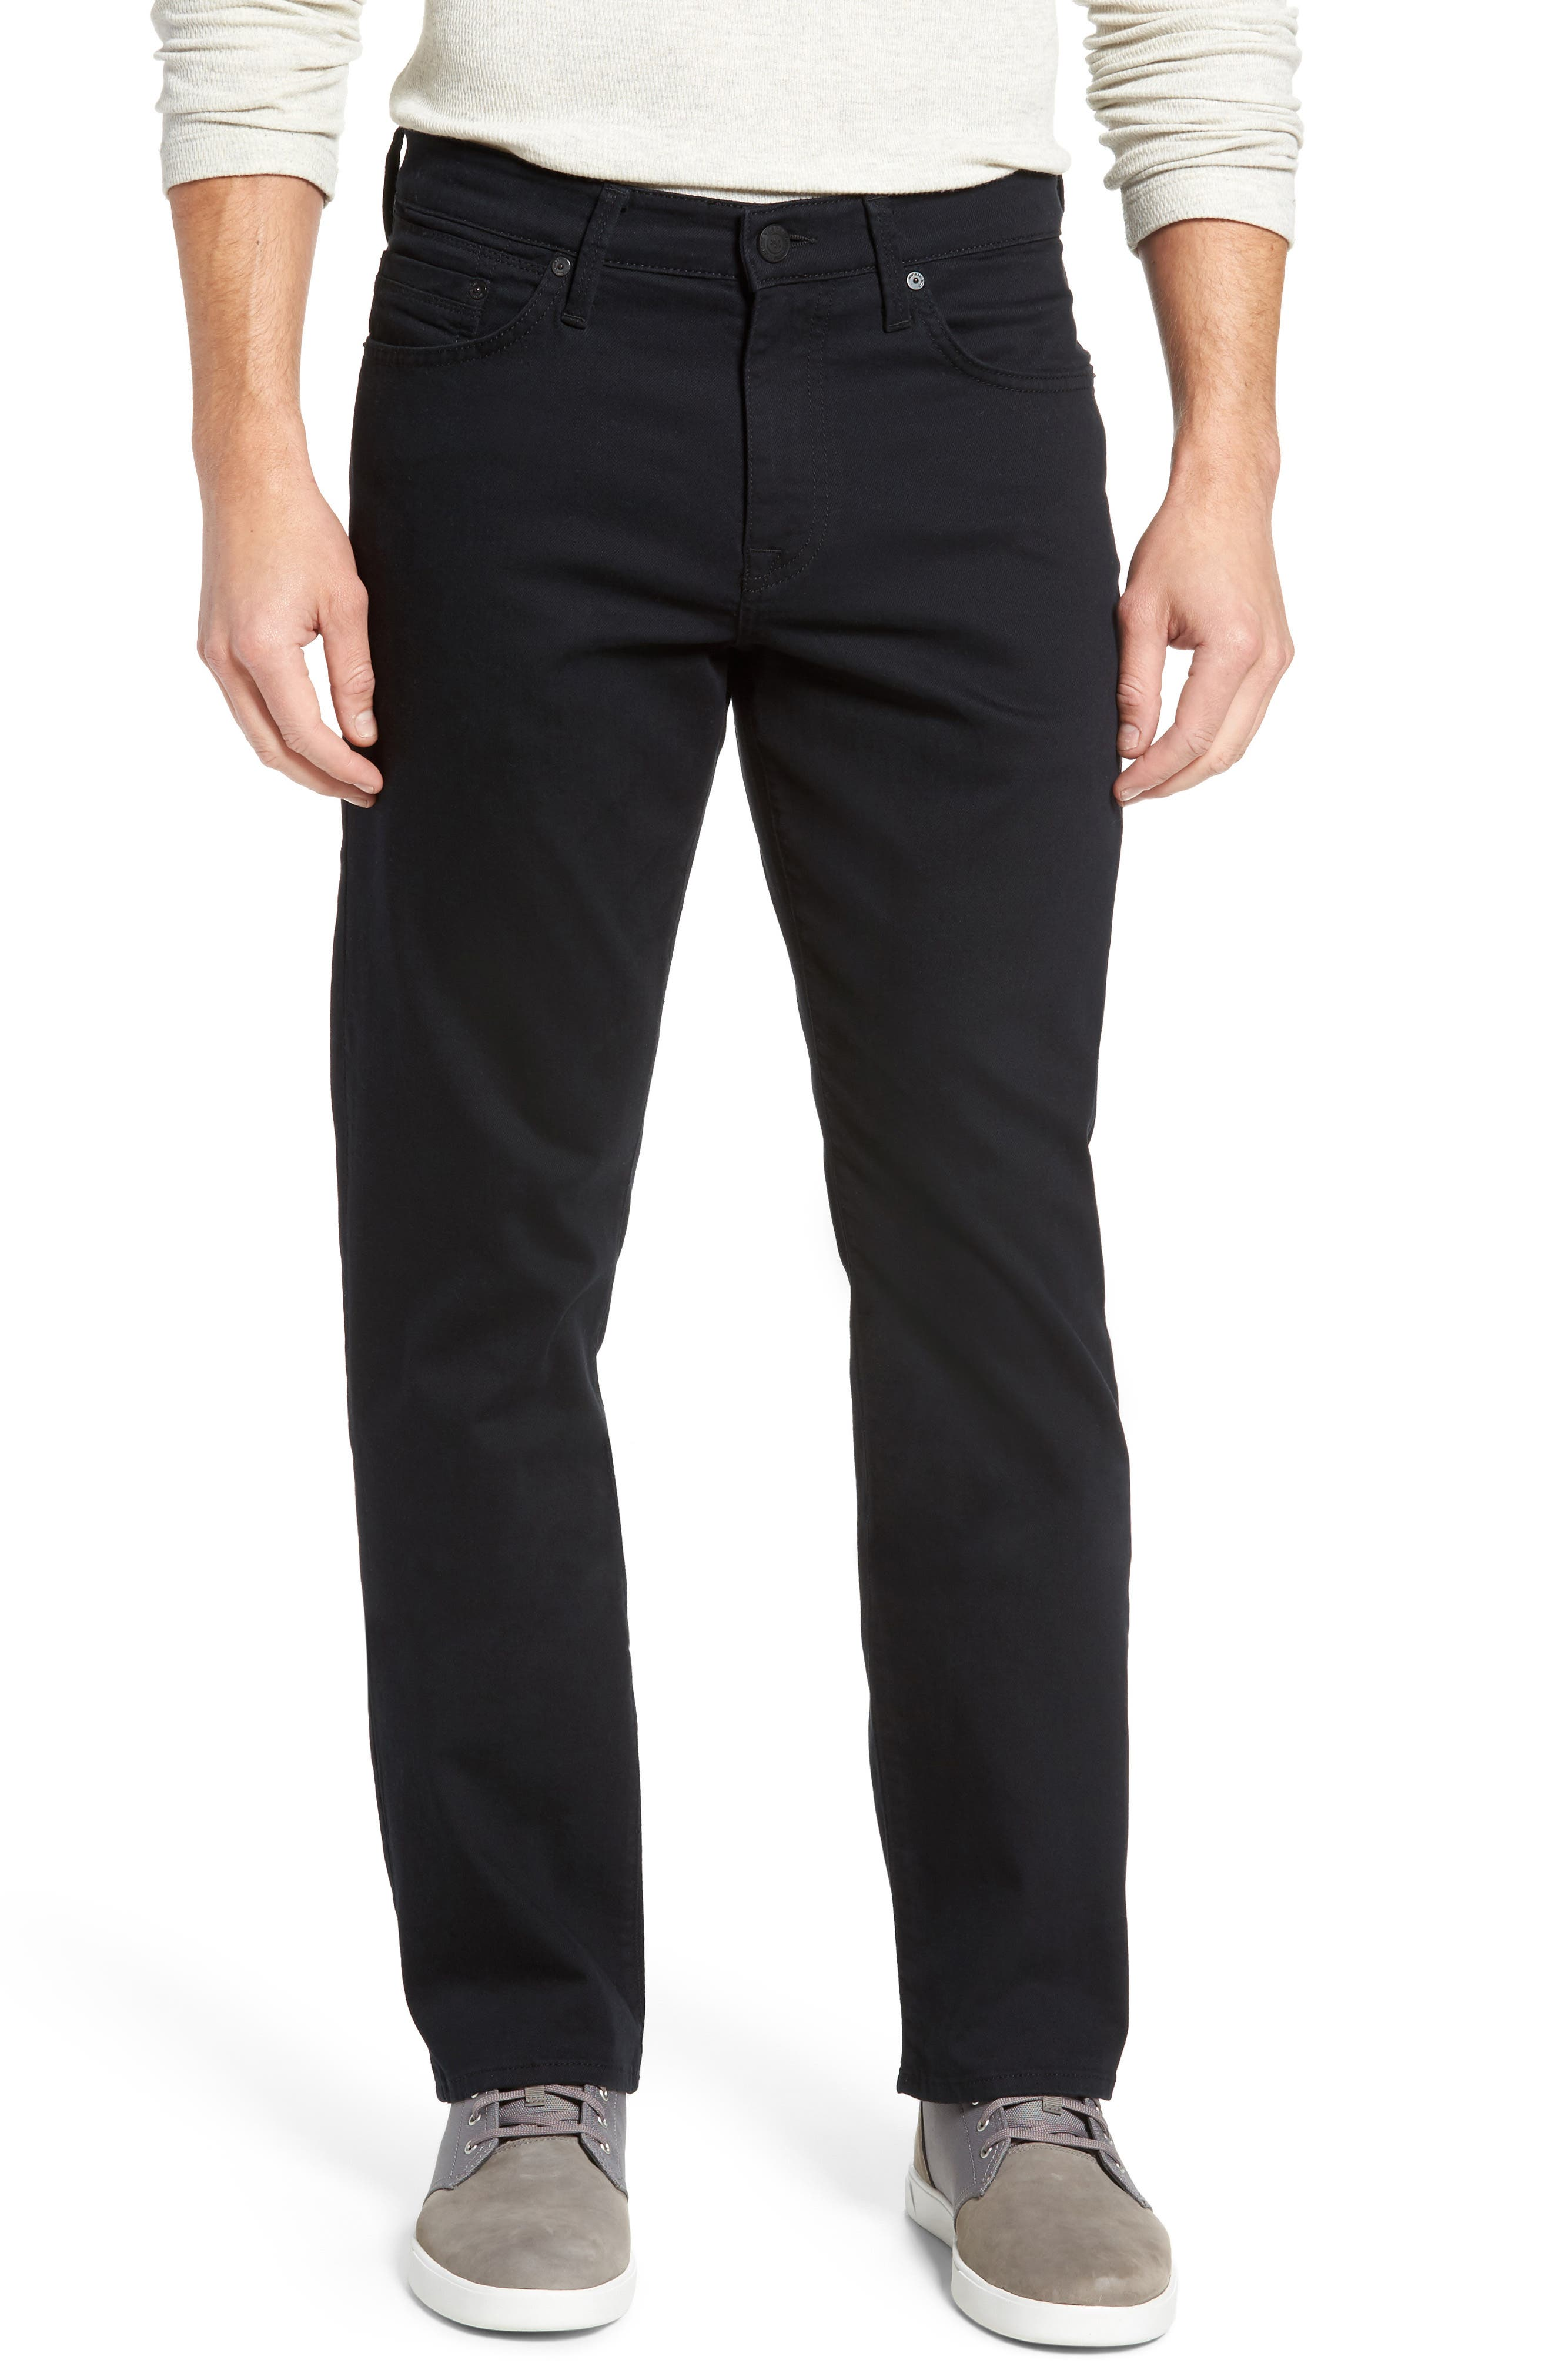 Matt Relaxed Fit Jeans,                         Main,                         color, Black Williamsburg